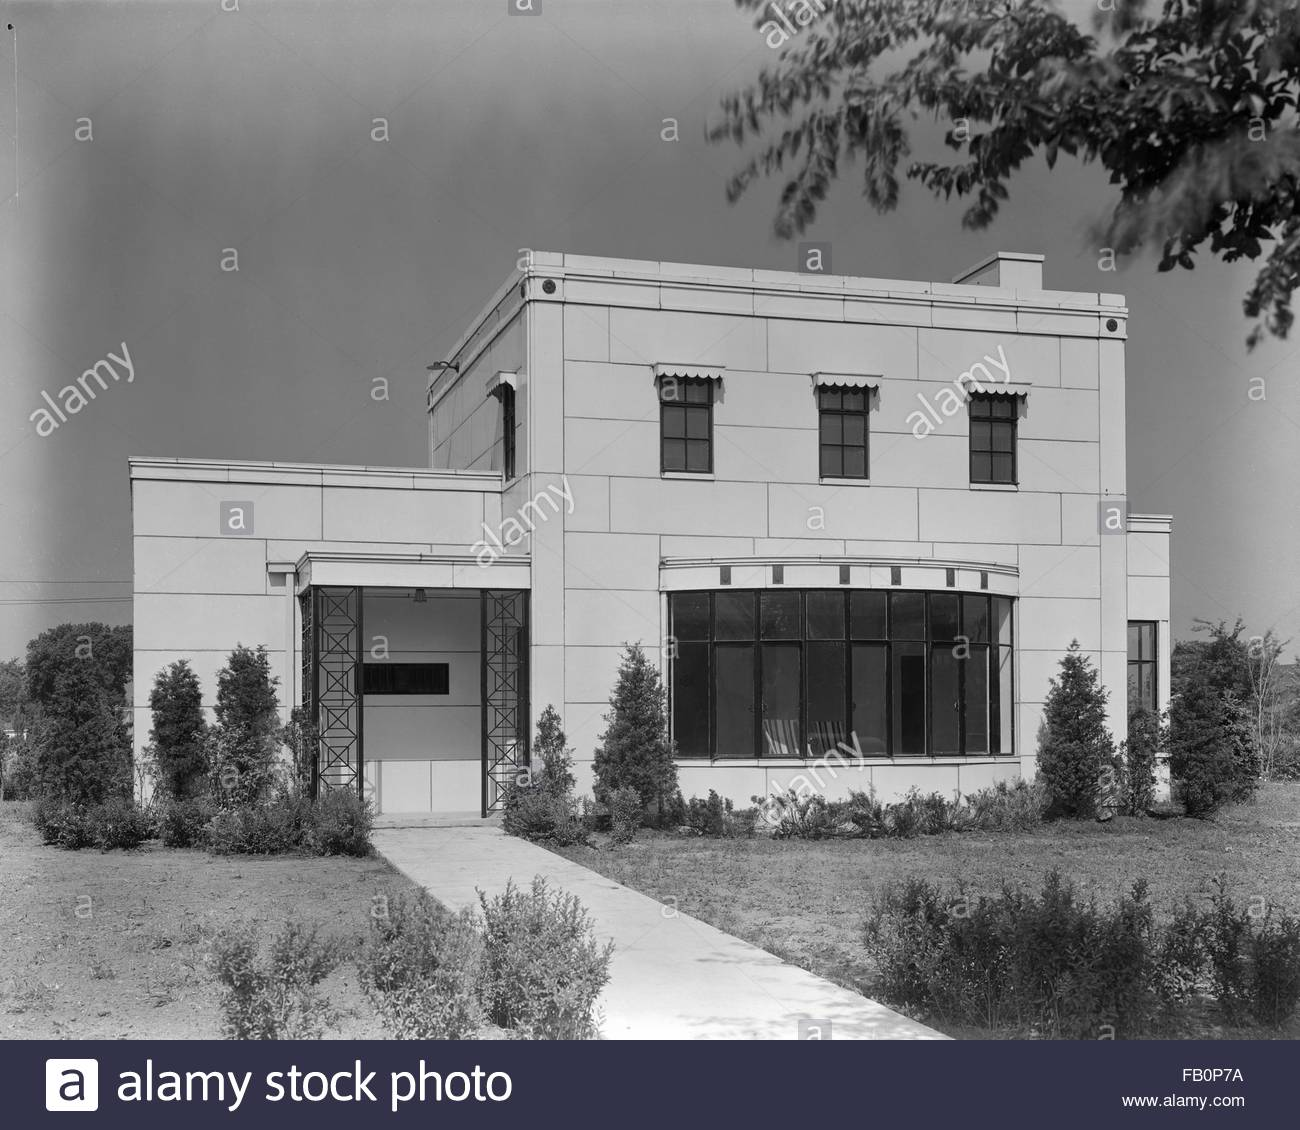 Good Housekeeping-Stran-Steel House in Wilmette (Ill.), 1936 June 17. Front elevation of house. - Stock Image